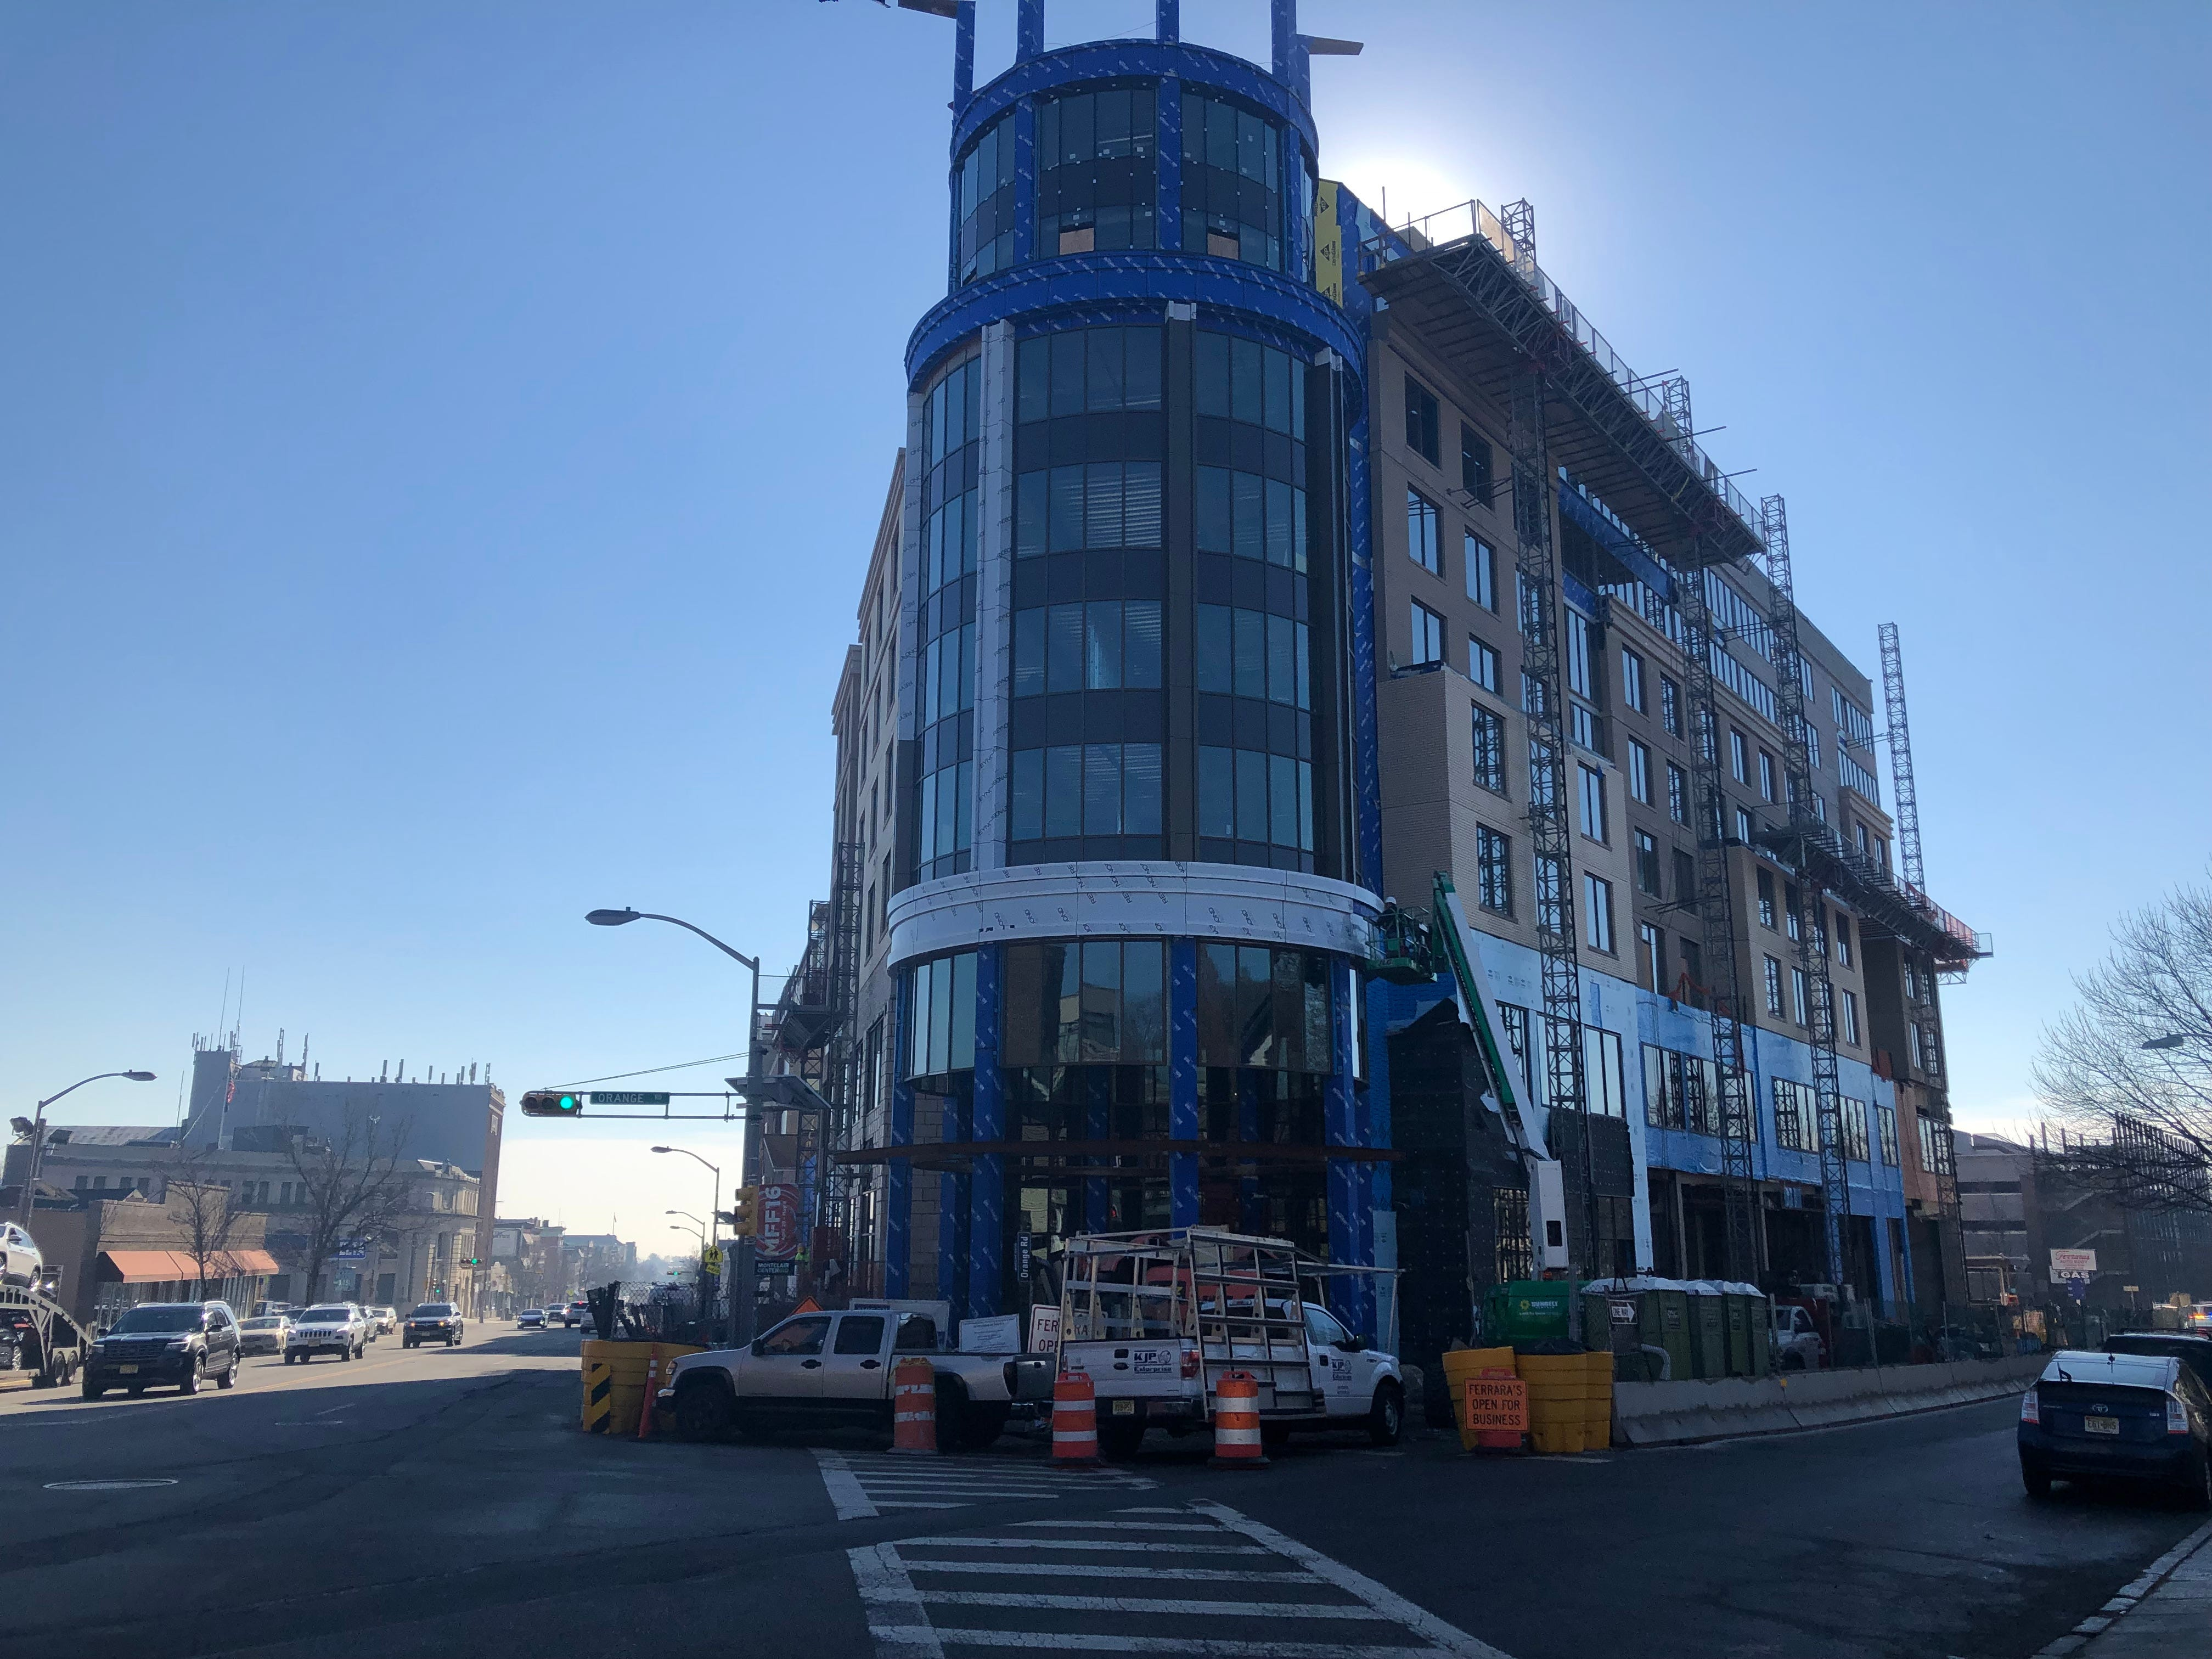 """The MC Hotel will have 159 rooms when complete, and share 63,528 square feet of retail space with the adjacent Valley & Bloom apartment building. The complex  is located at the """"Gateway"""" to Montclair: the corner of Bloomfield Avenue and Valley Road. Both properties were built by Brian Stolar and his company, Pinnacle Properties."""